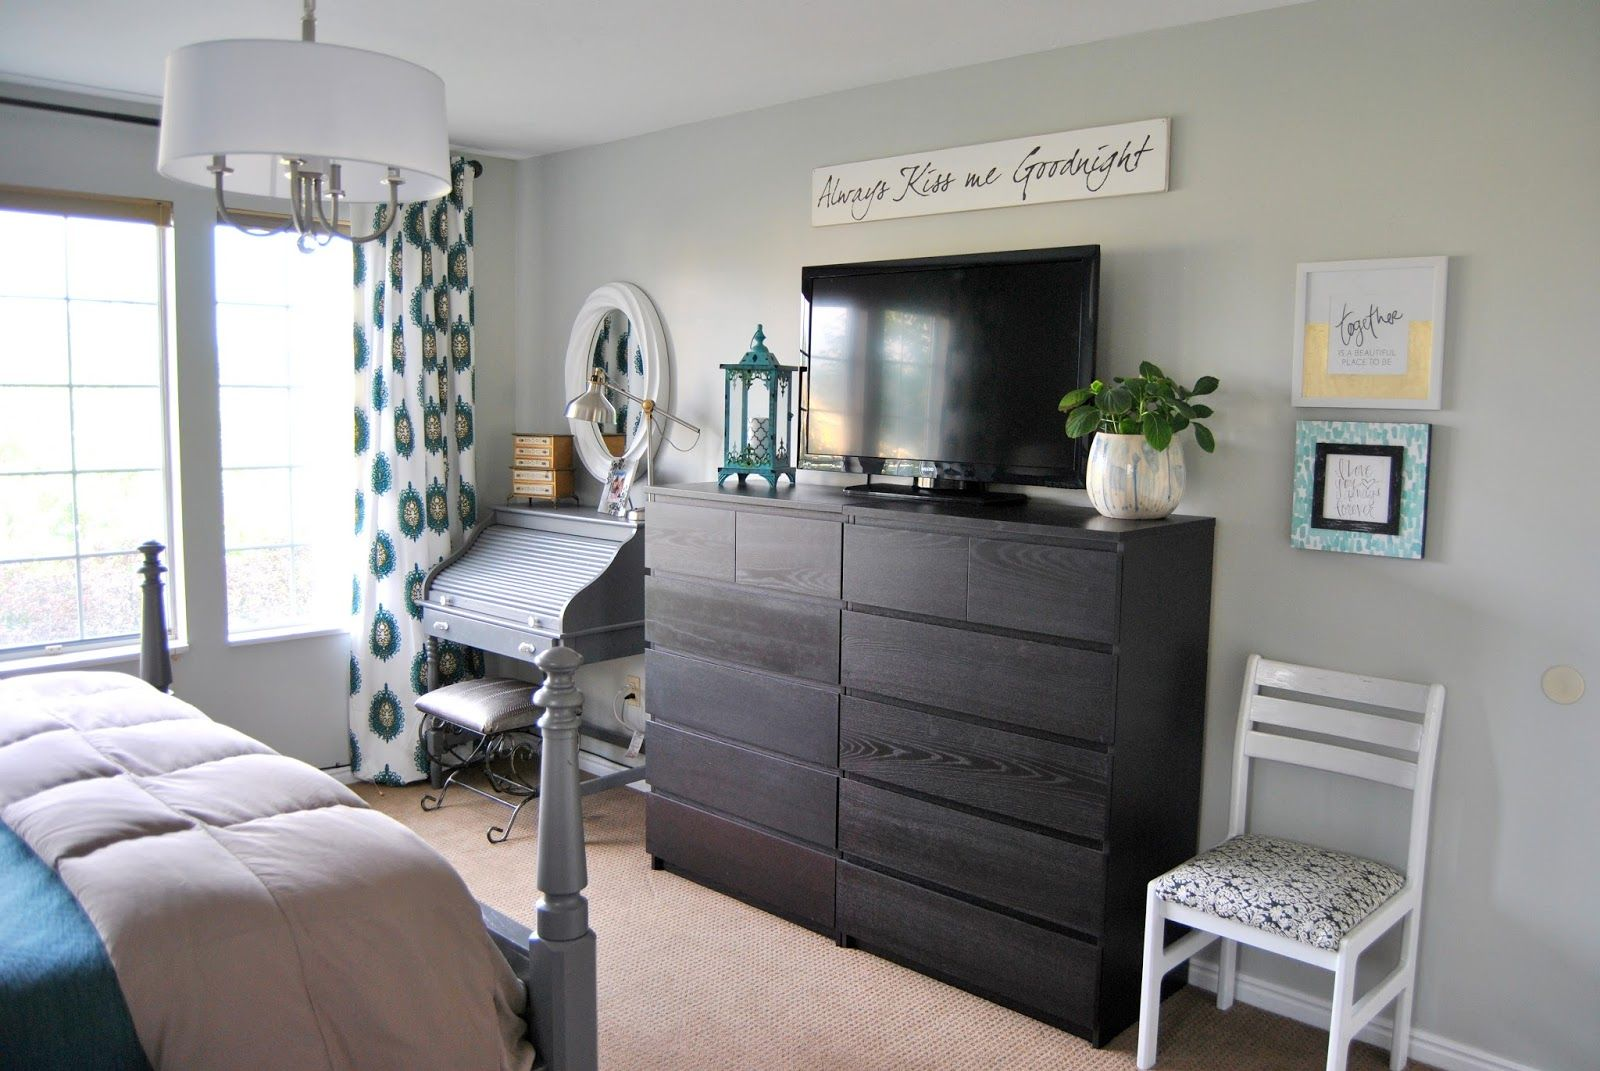 2 dressers pushed together - Google Search